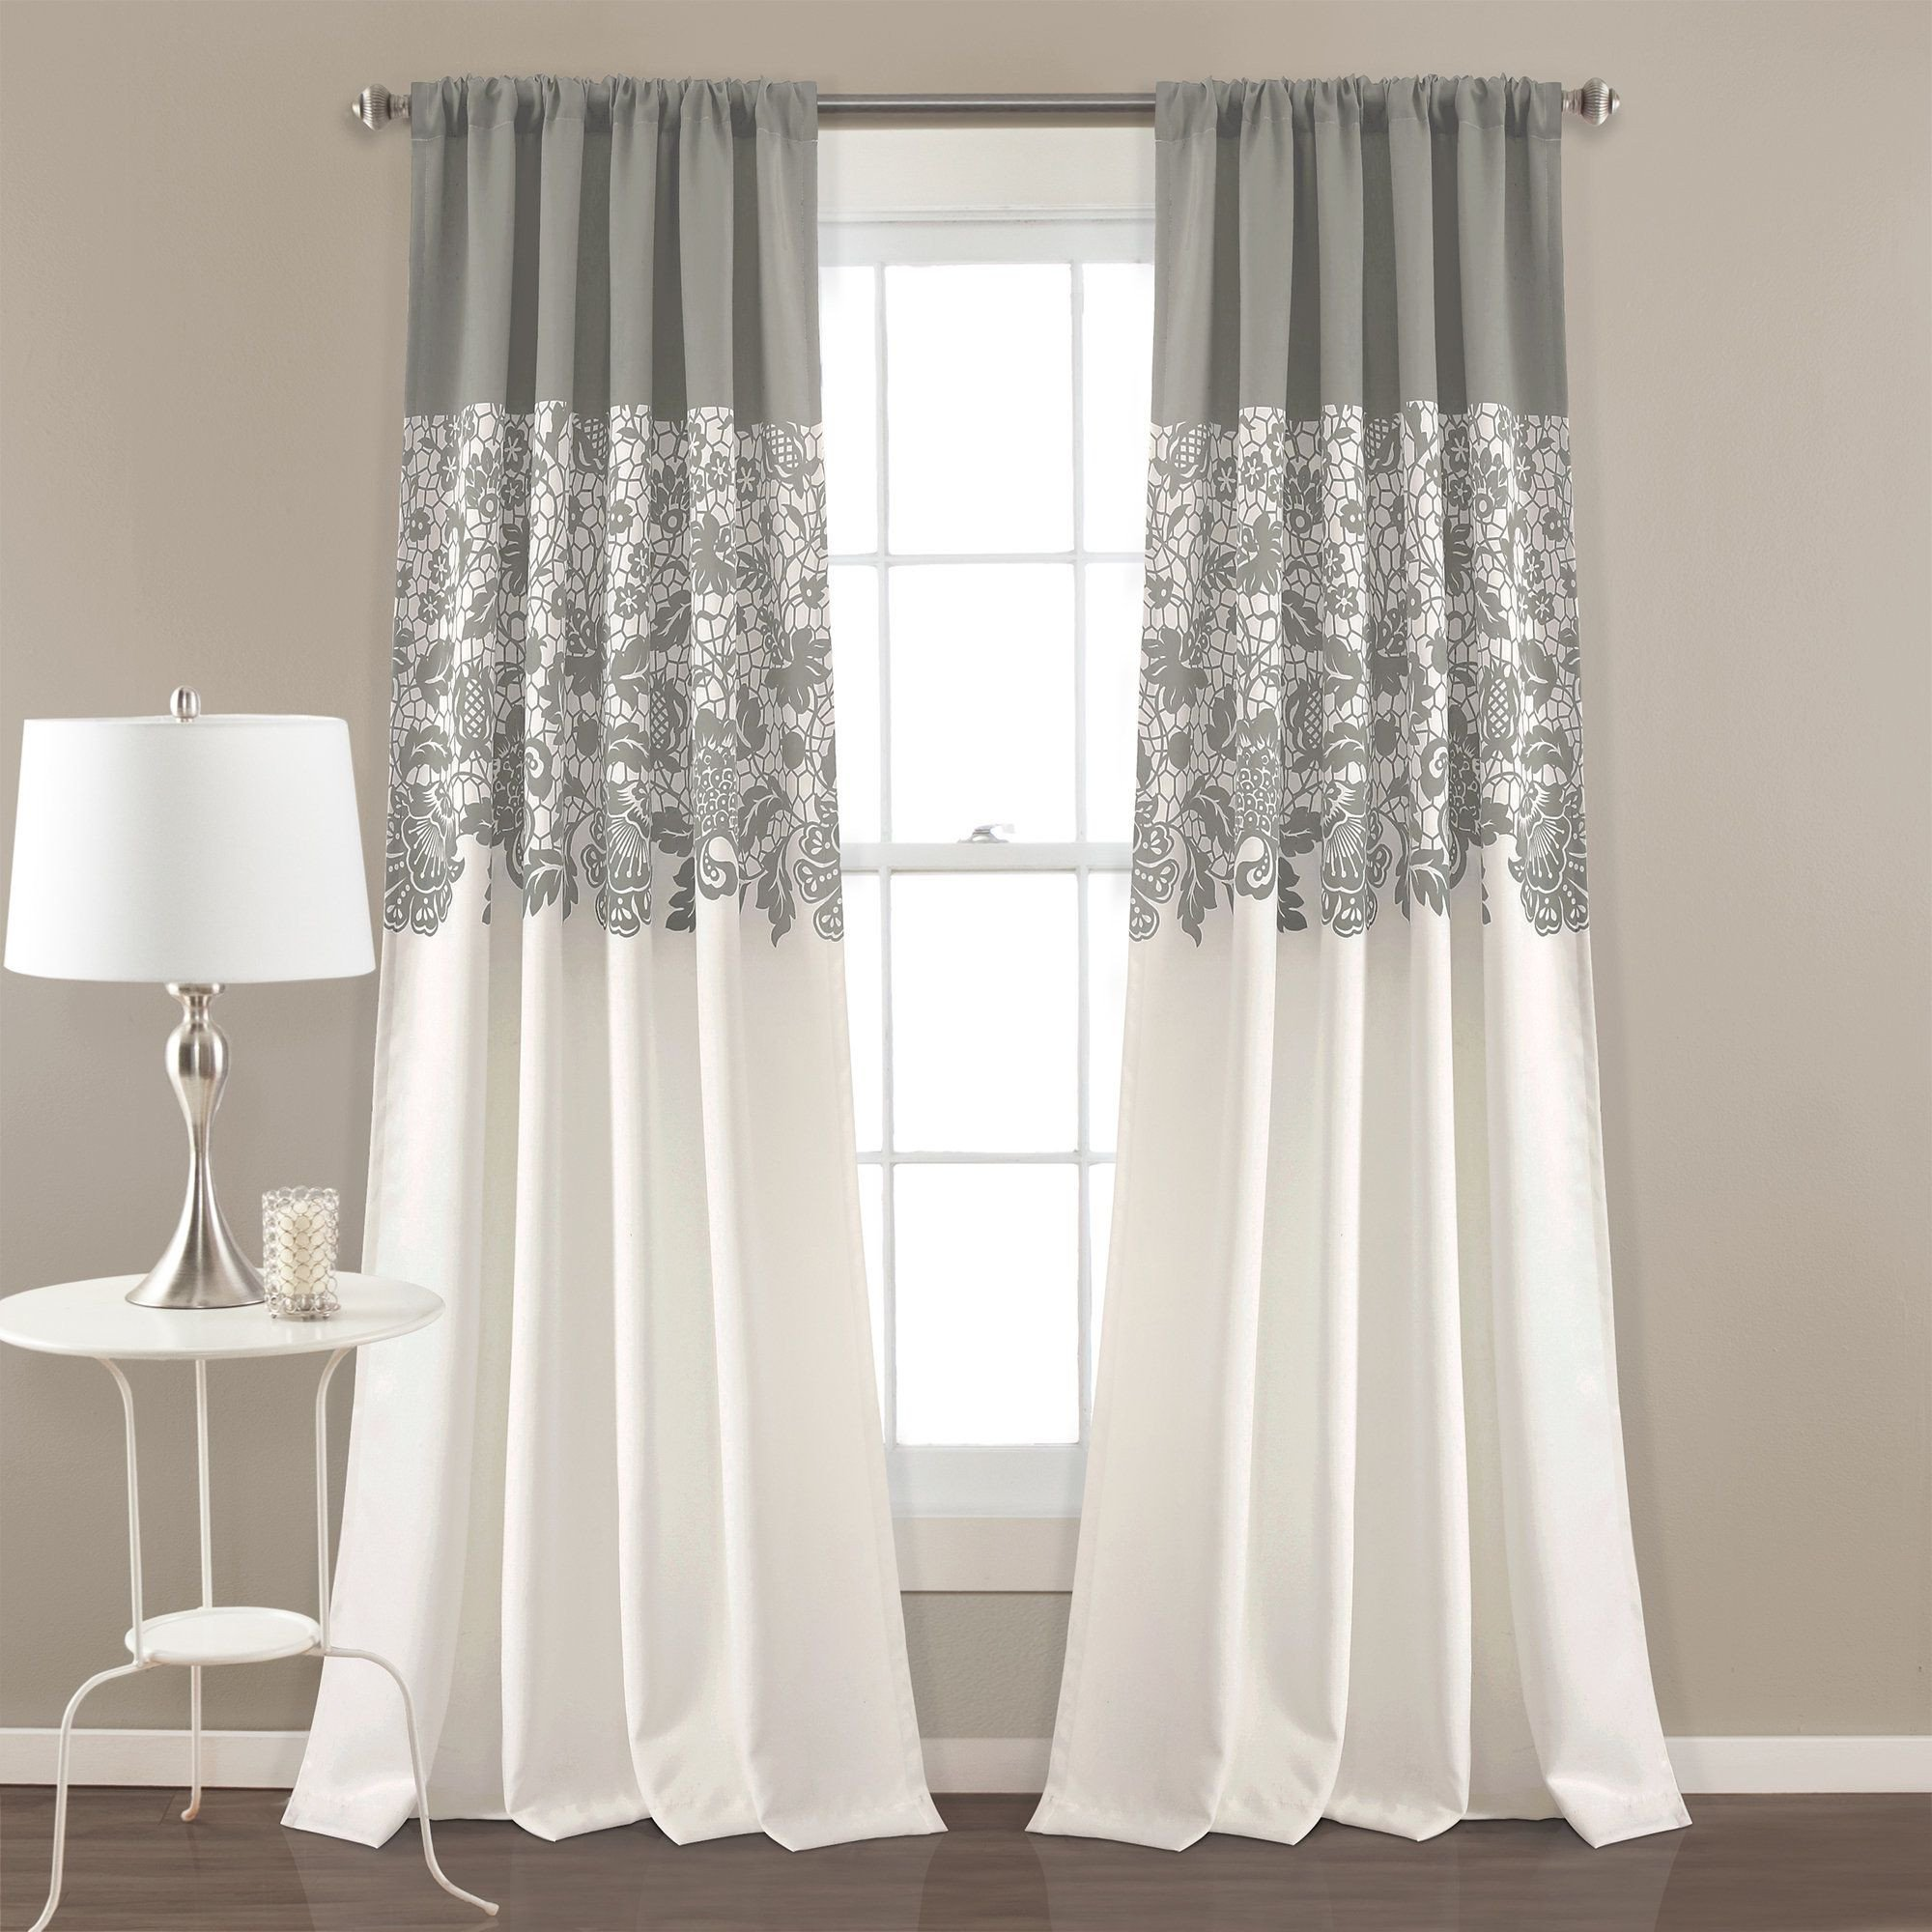 Bedroom Curtains and Drapes Awesome Santa Fe Print Floral Room Darkening thermal Rod Pocket